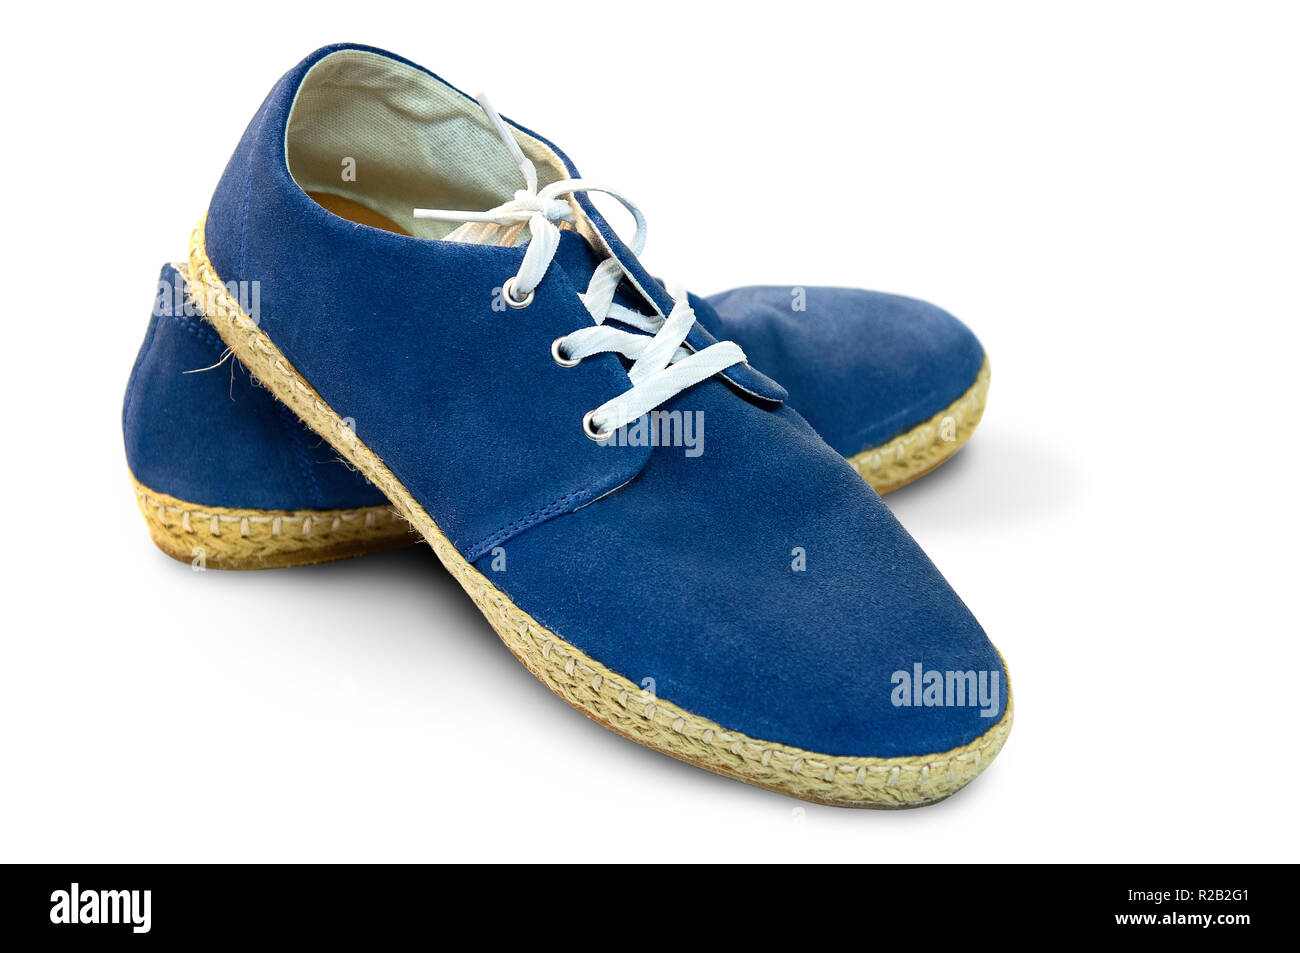 Blue casual shoes isolated on white background, with clipping path. - Stock Image